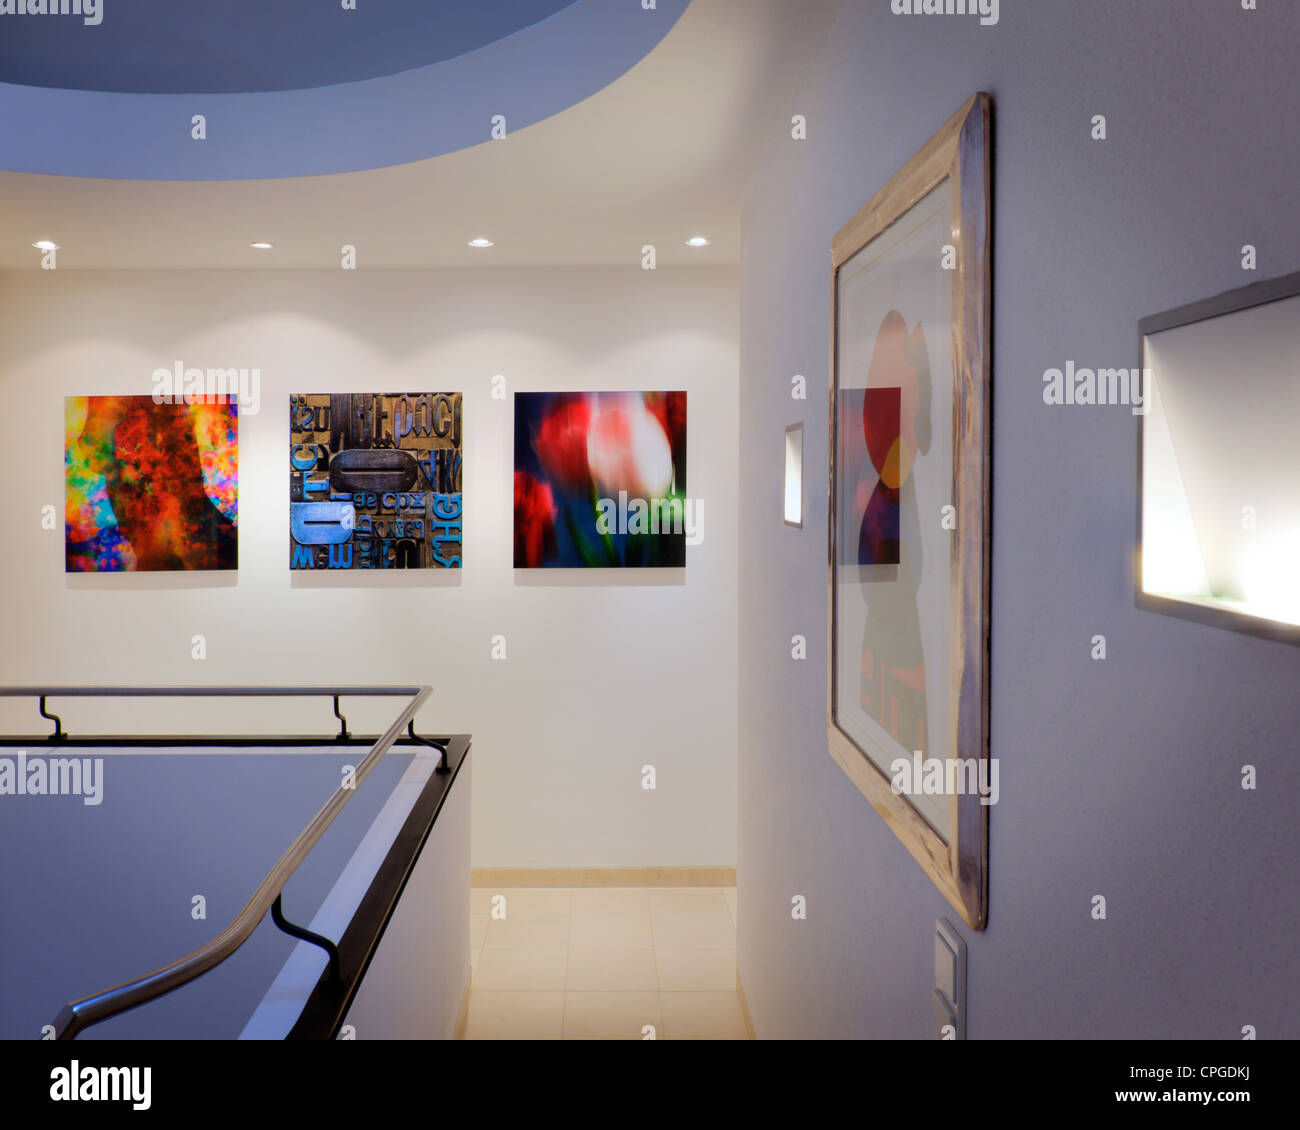 ARCHITECTURE: Contemporary Gallery Afficher (Allemagne/Bad Toelz) Photo Stock